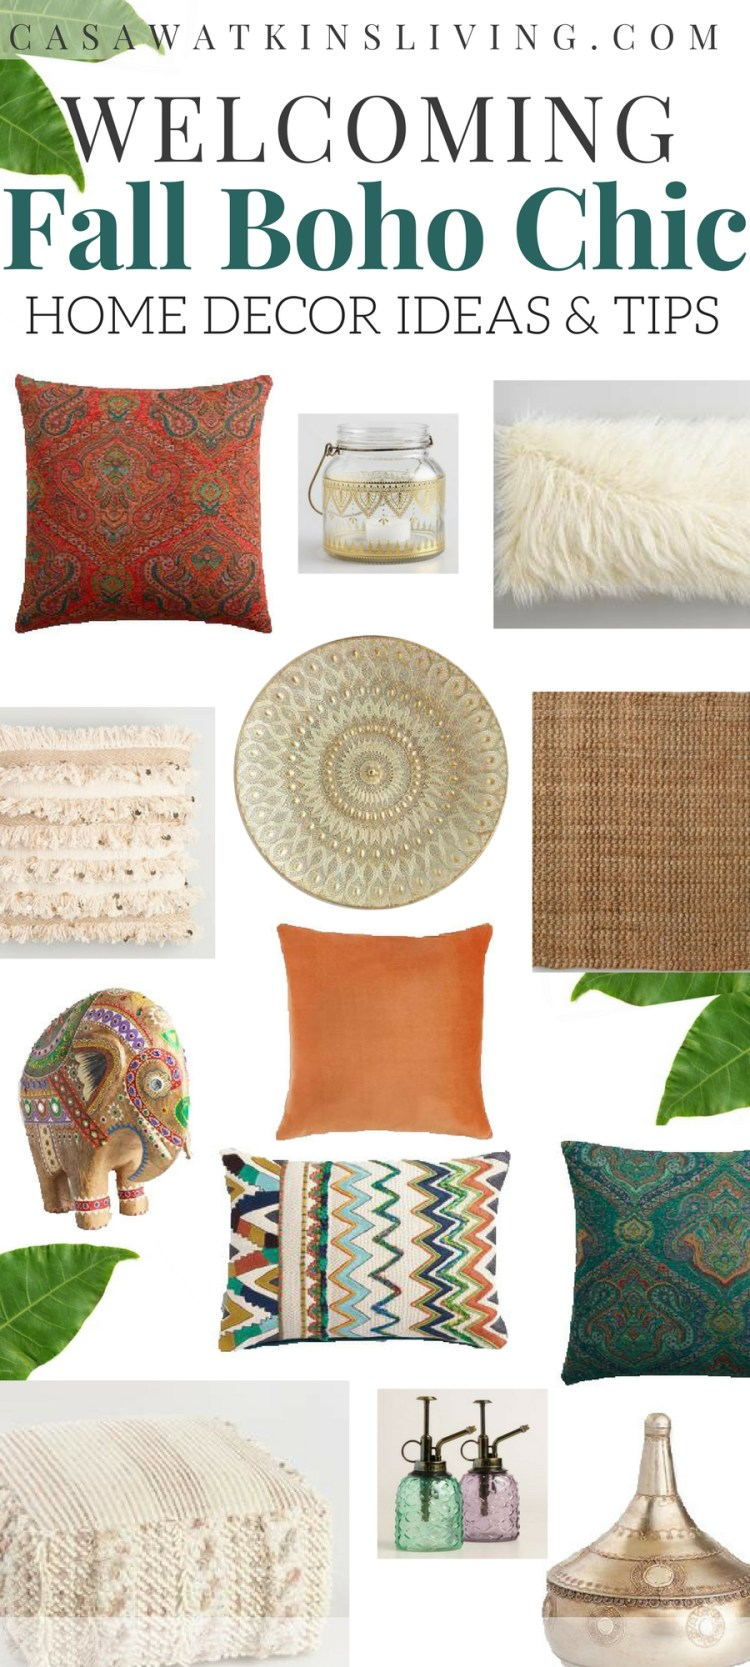 fall boho chic decor ideas and tips for welcoming entryway and living room